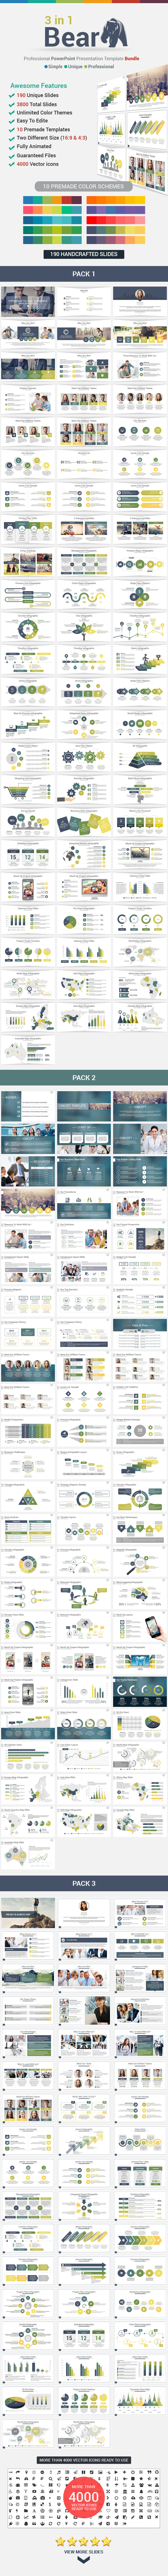 3 in 1 Bear PowerPoint Template Bundle - Business PowerPoint Templates